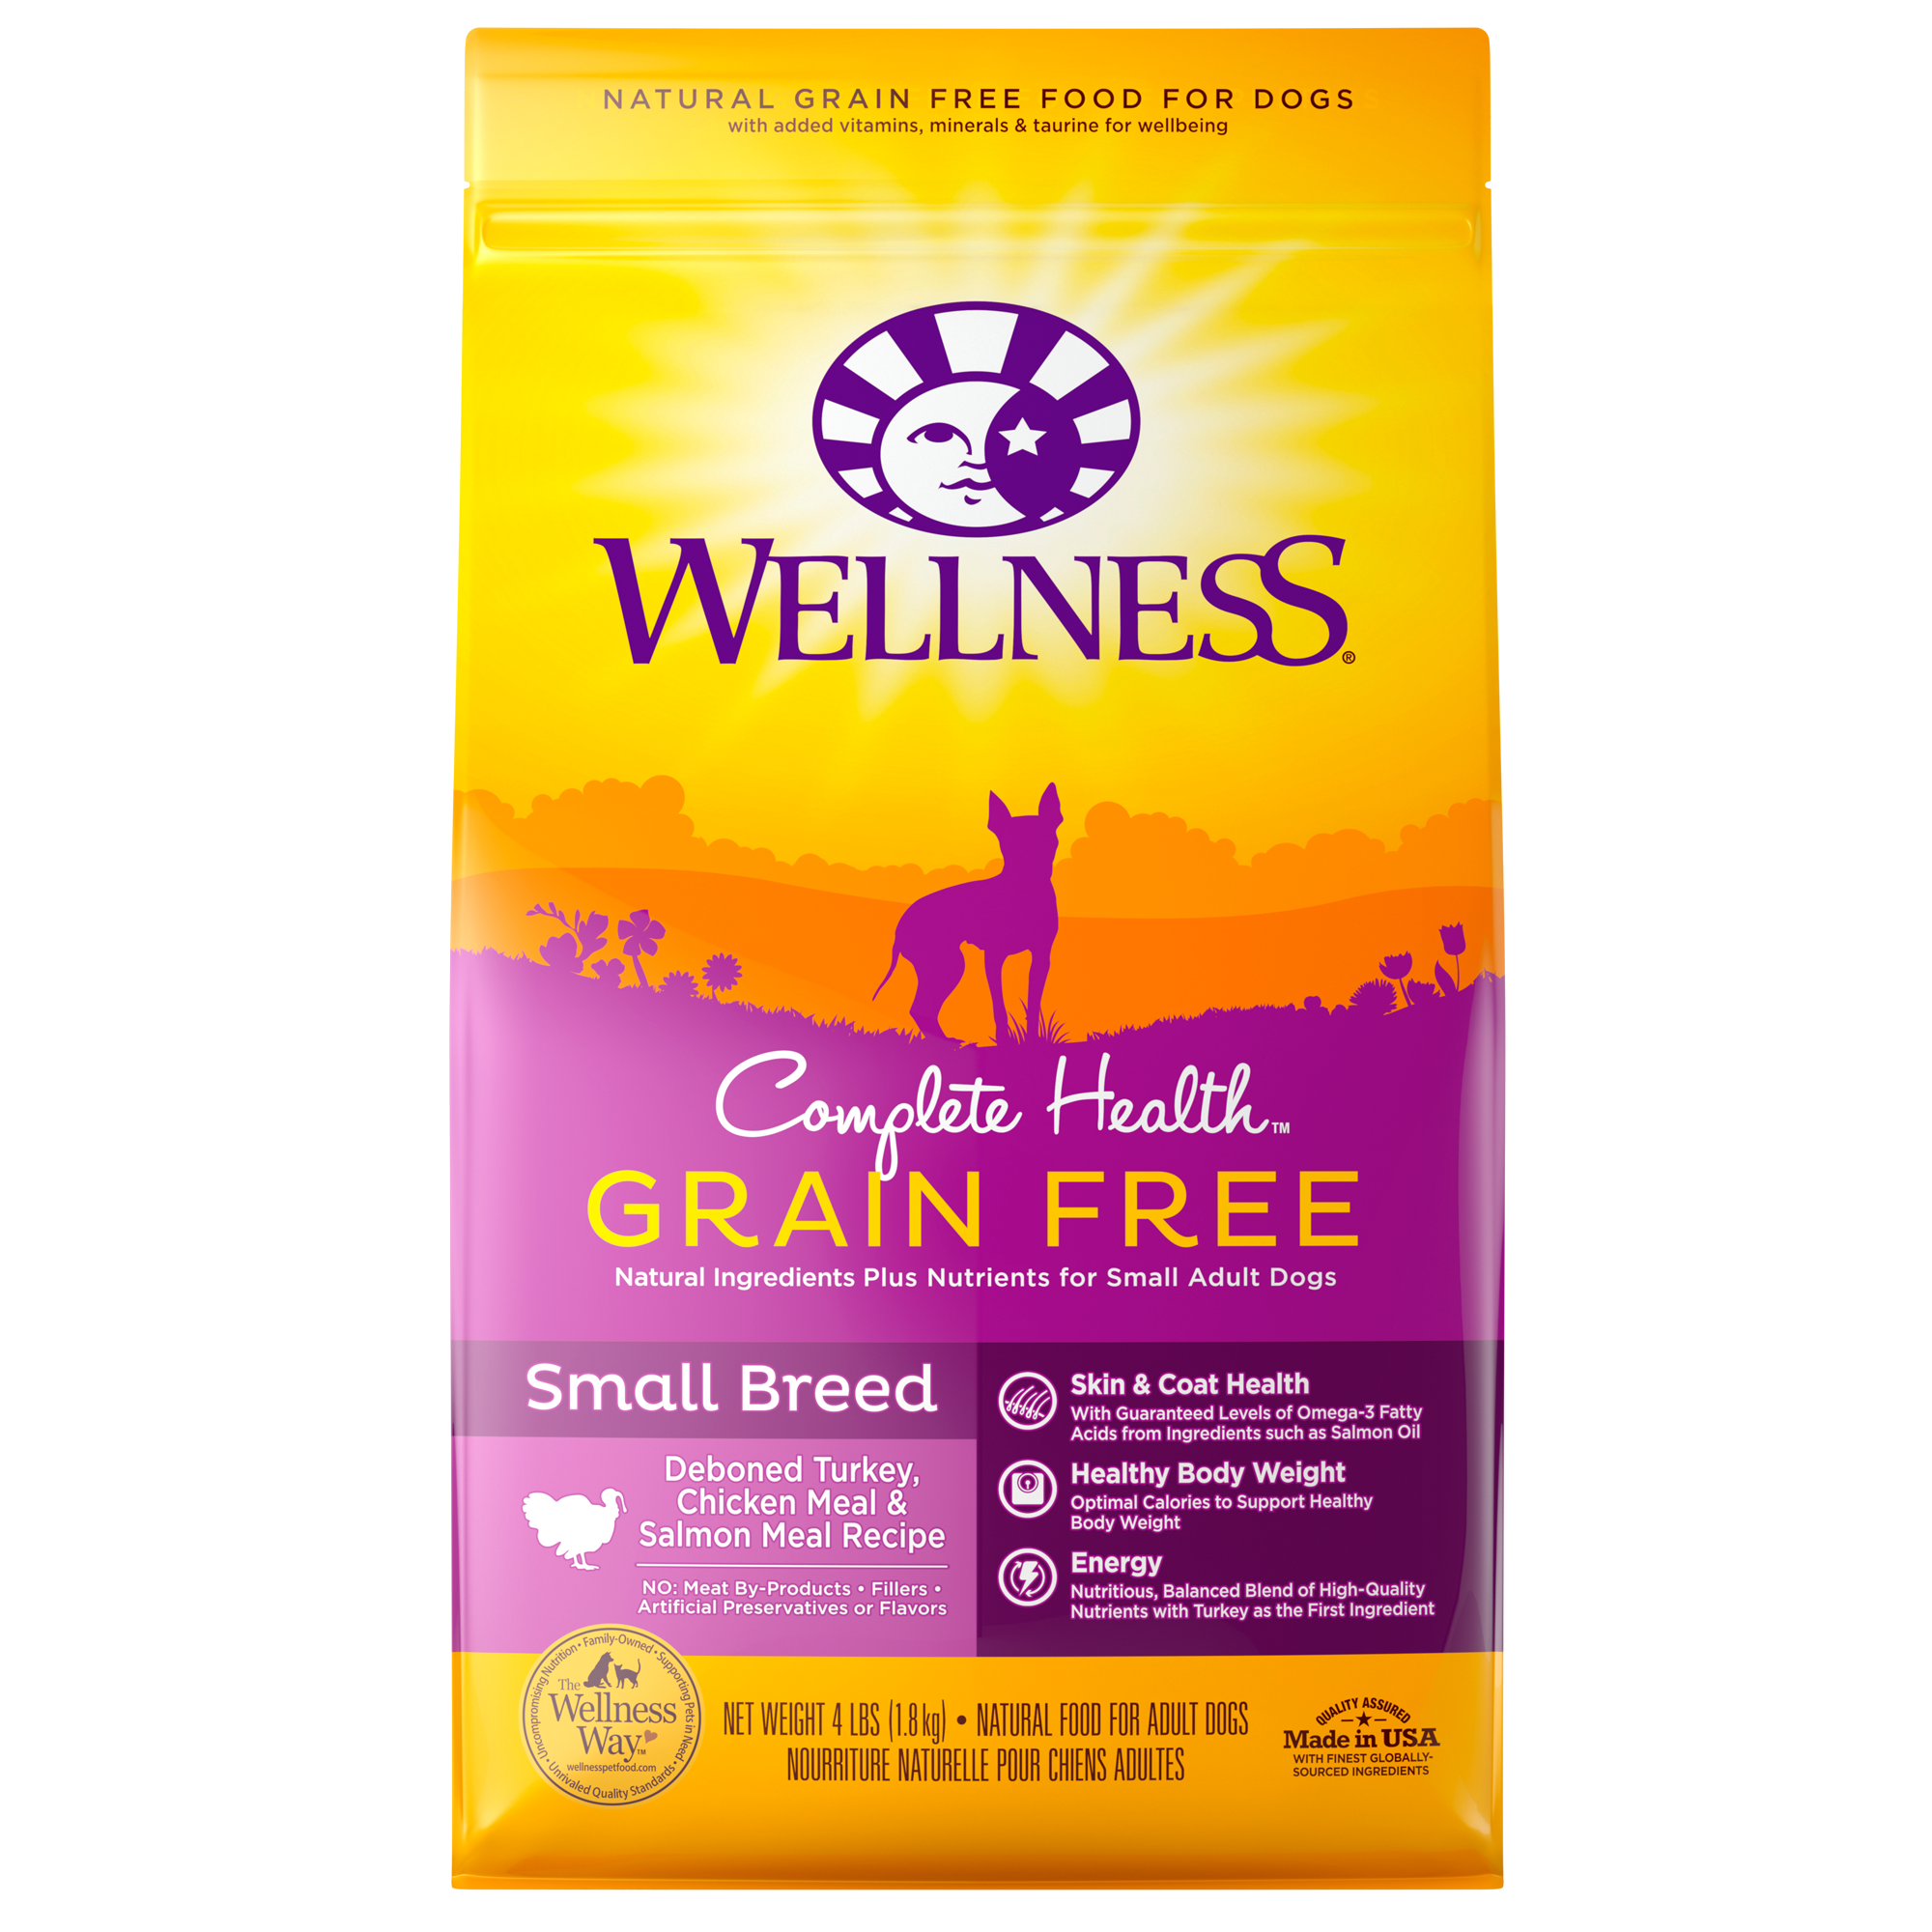 Complete Health Grain Free Small Breed